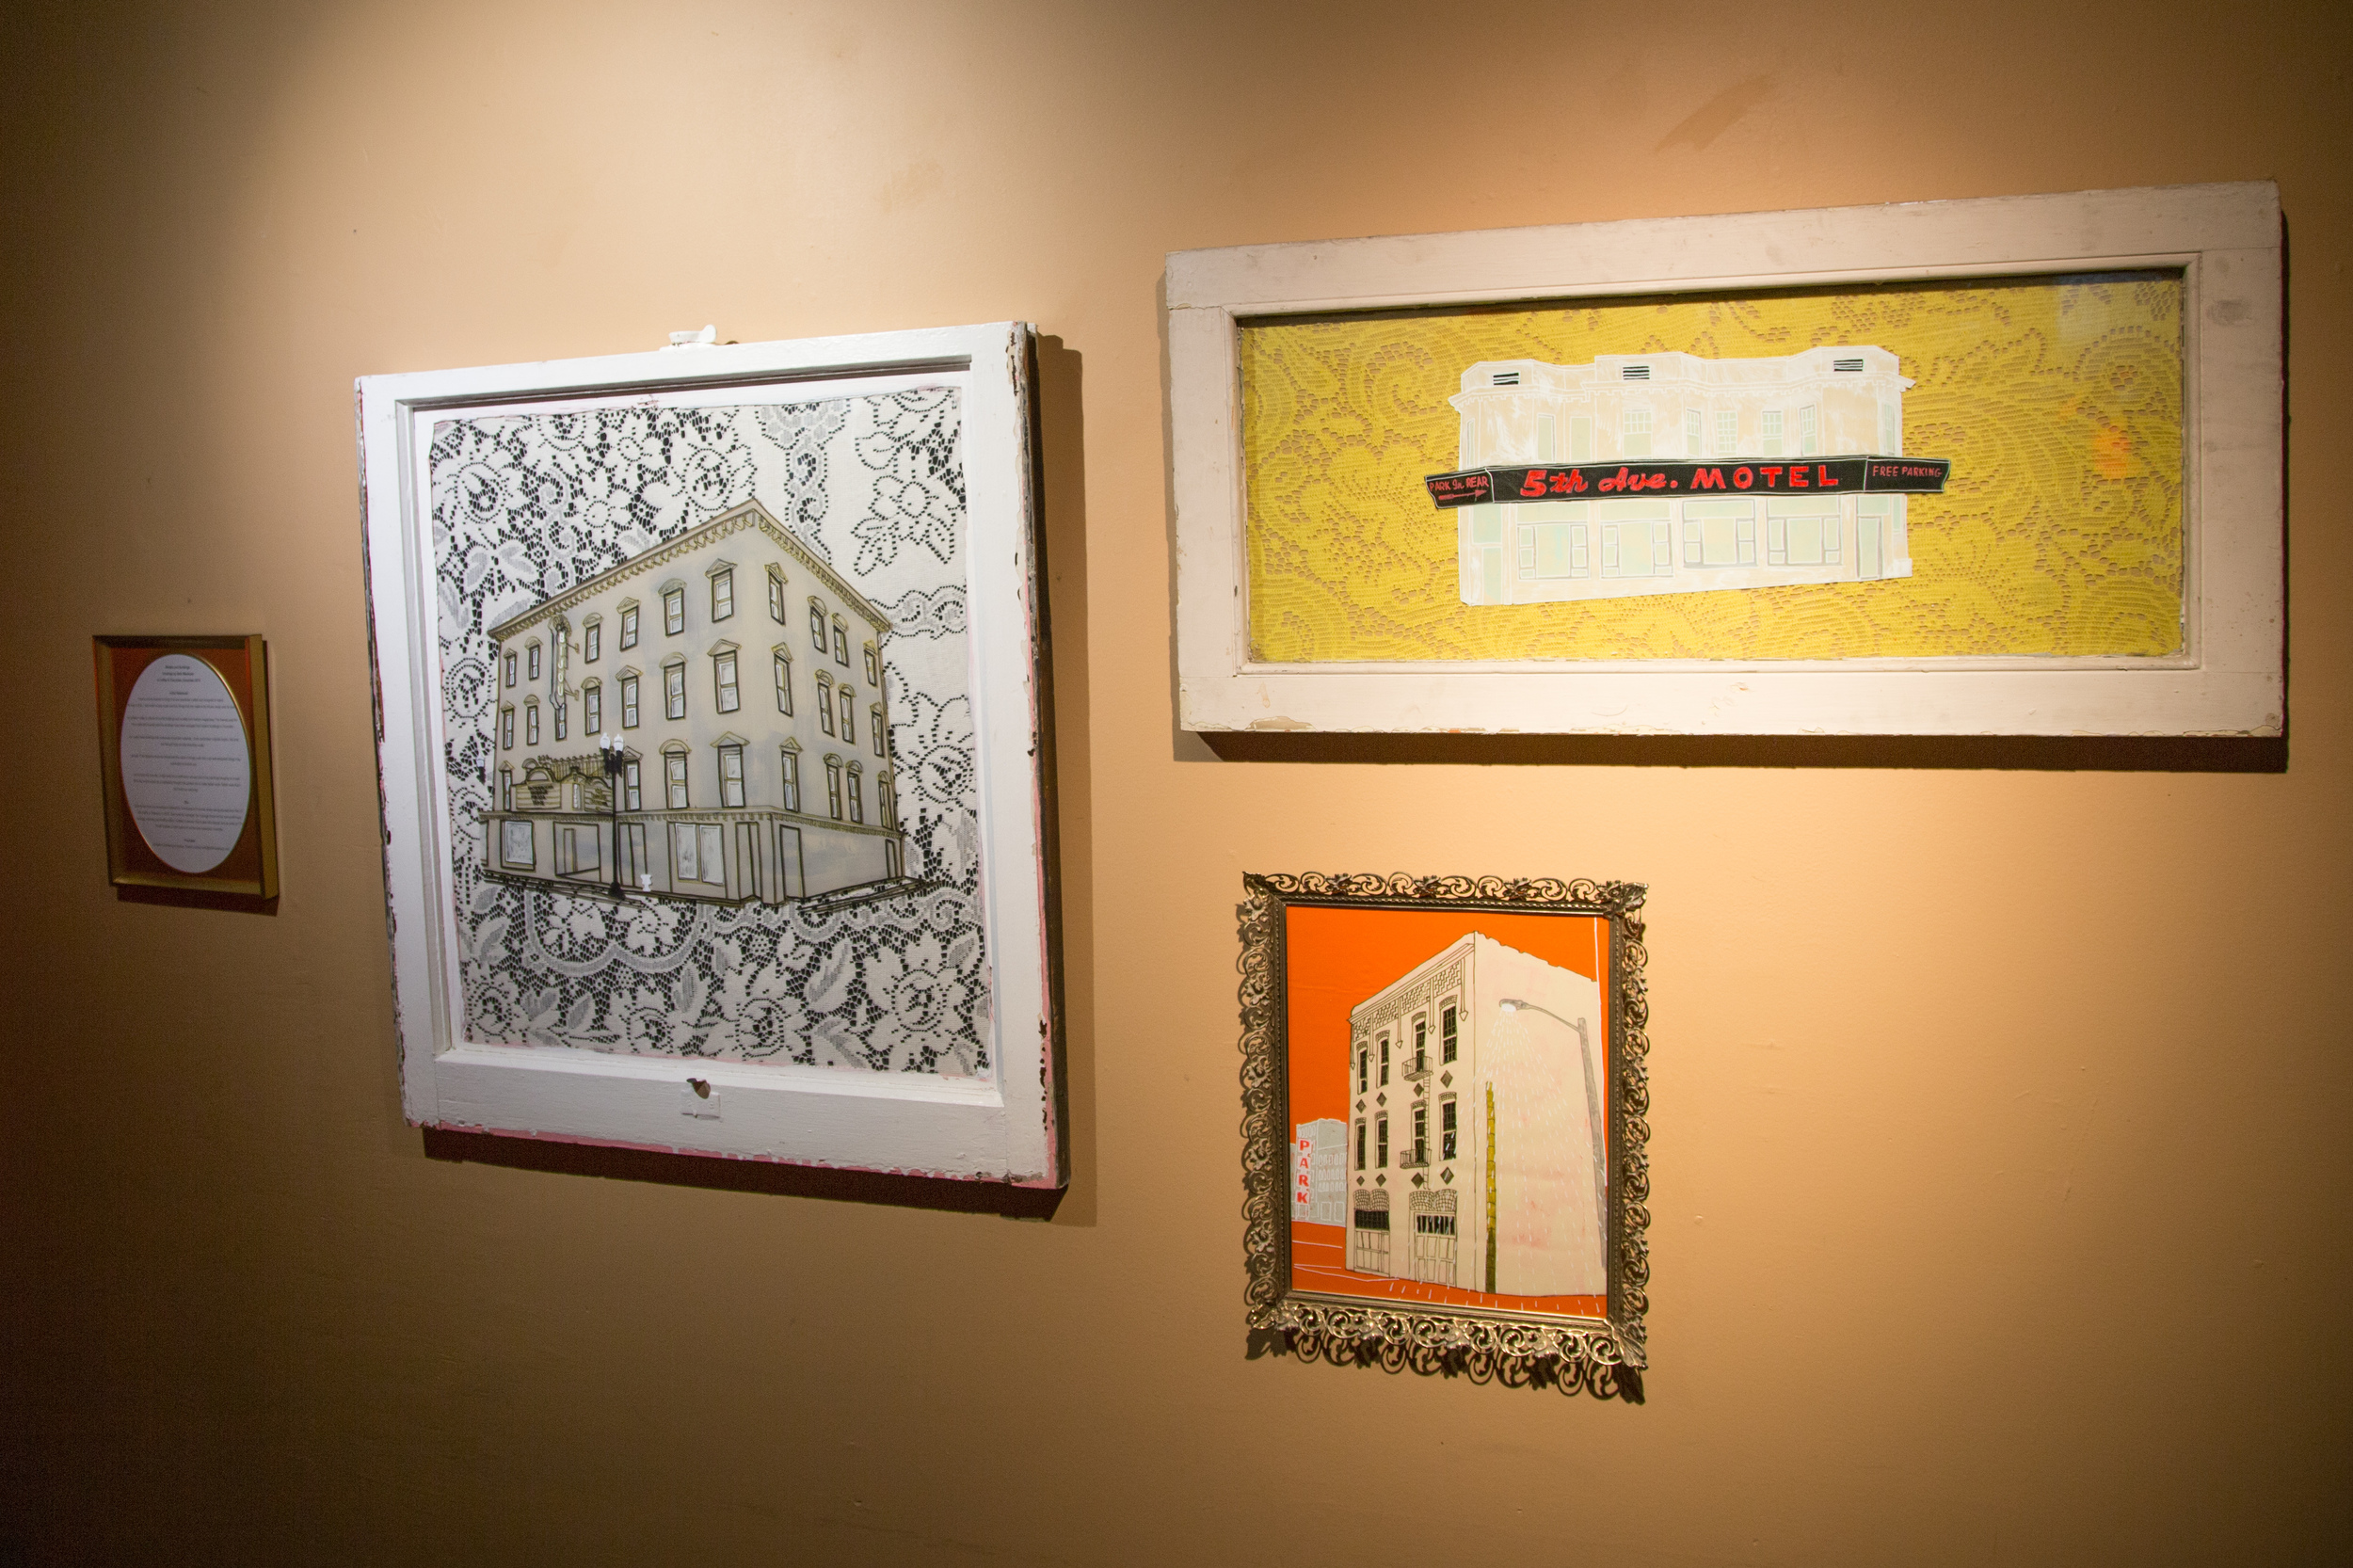 Historic Knoxville Buildings  paint pen and acrylic on acetate, lace and fabric, framed in salvaged windows and recycled frames. Photo by Matthew Higginbotham.